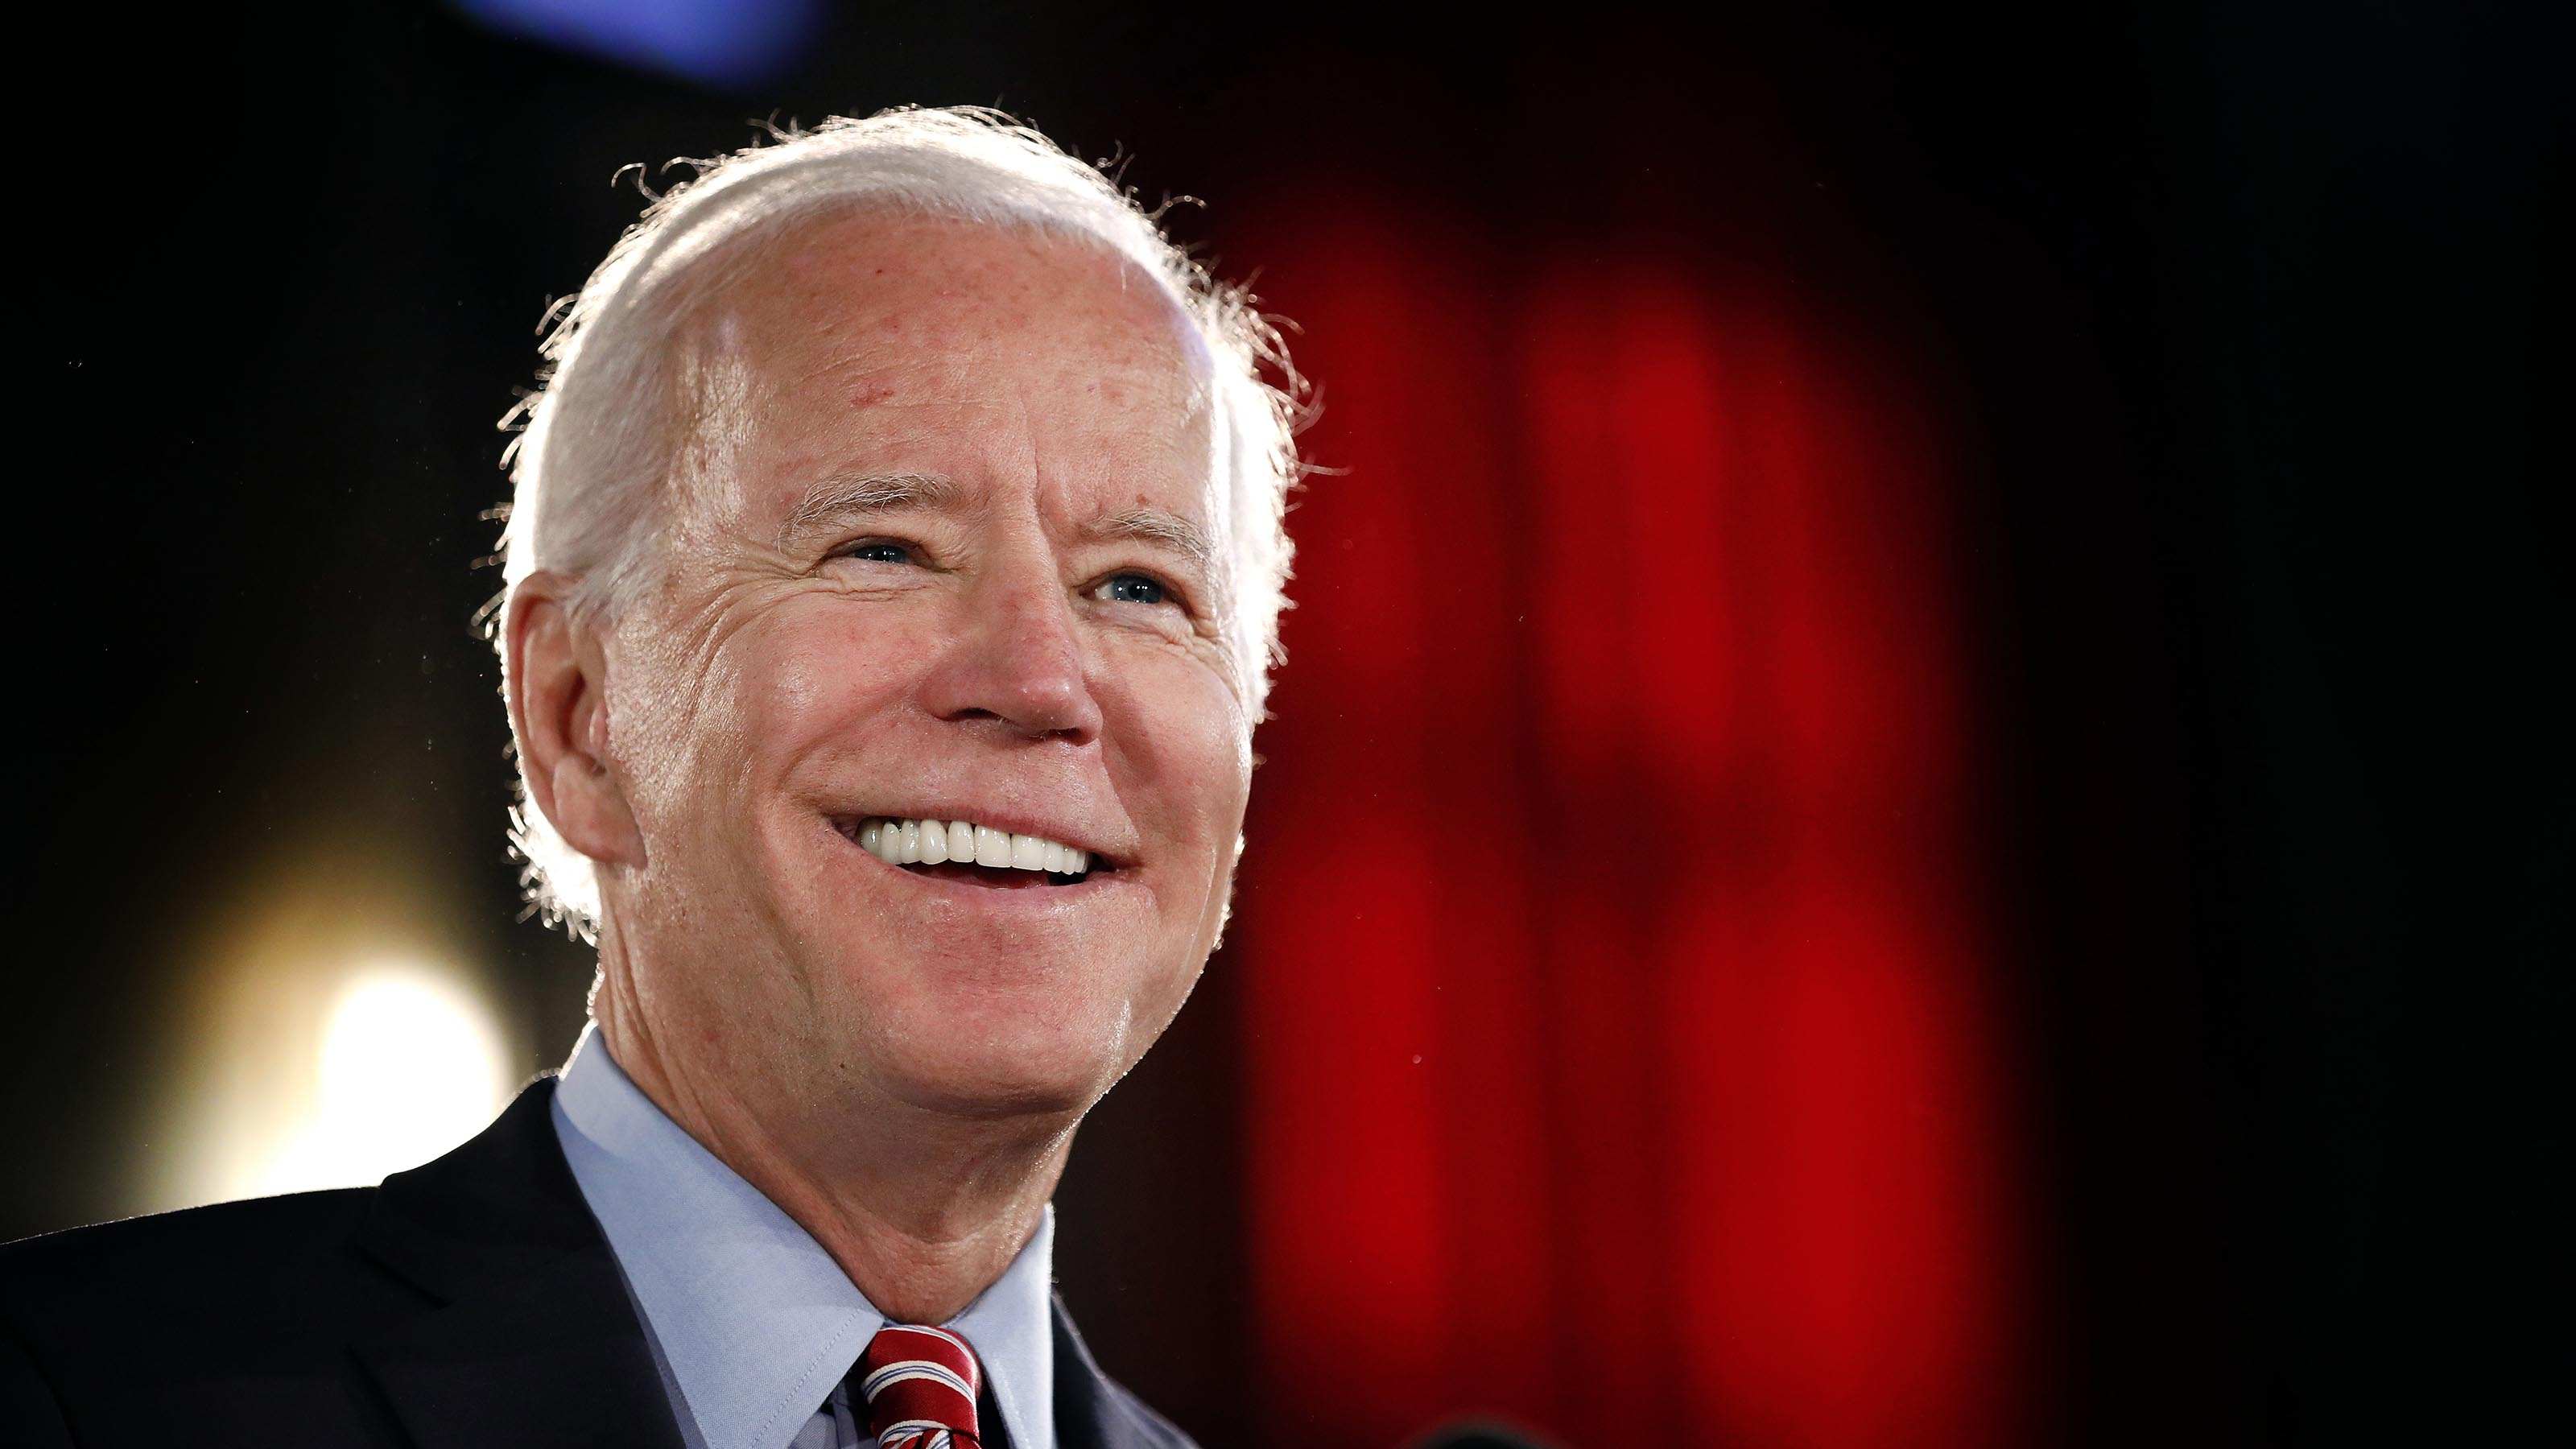 15 Best Stocks to Buy for the Joe Biden Presidency | Kiplinger